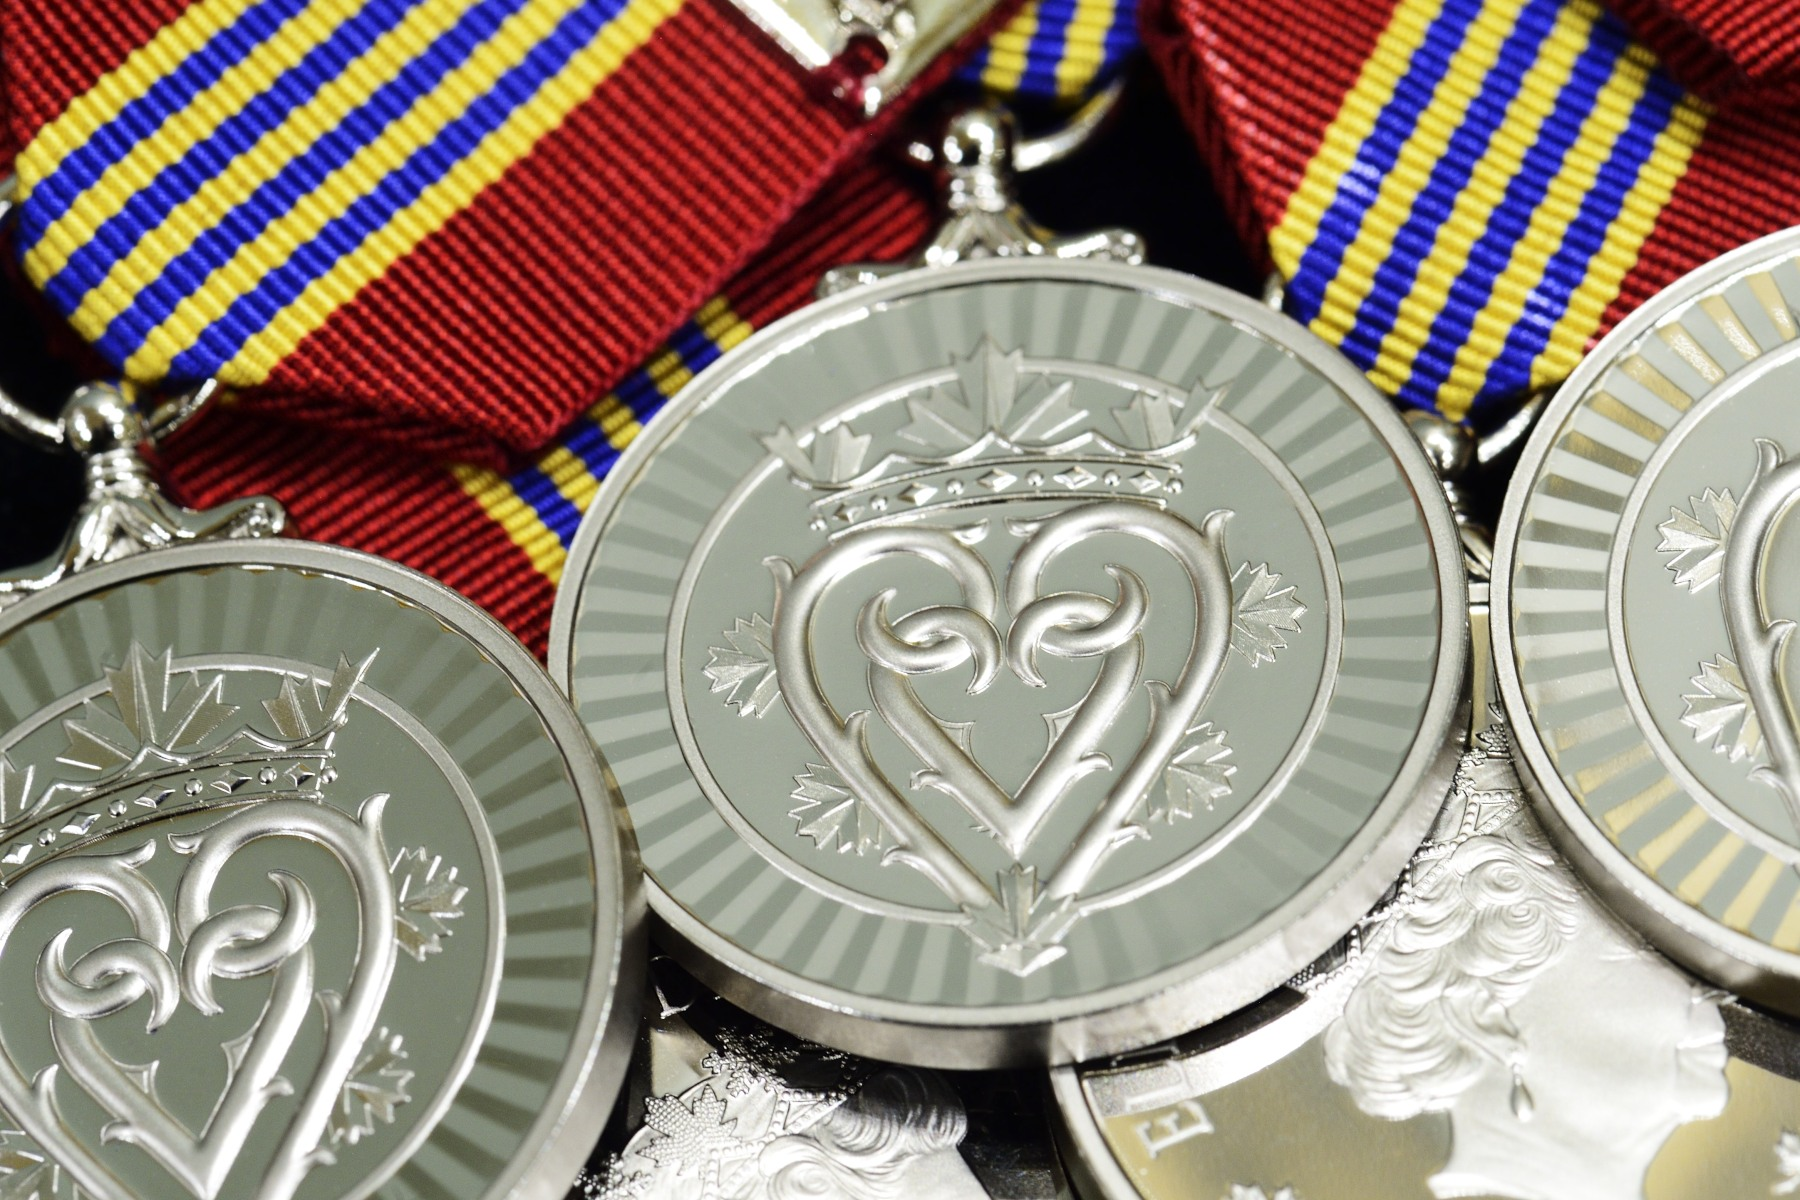 The Governor General presided over the inaugural presentation ceremony of the Sovereign's Medal for Volunteers at Rideau Hall. The new medal was presented to 55 Canadians to recognize exceptional volunteer achievements in a wide range of fields.